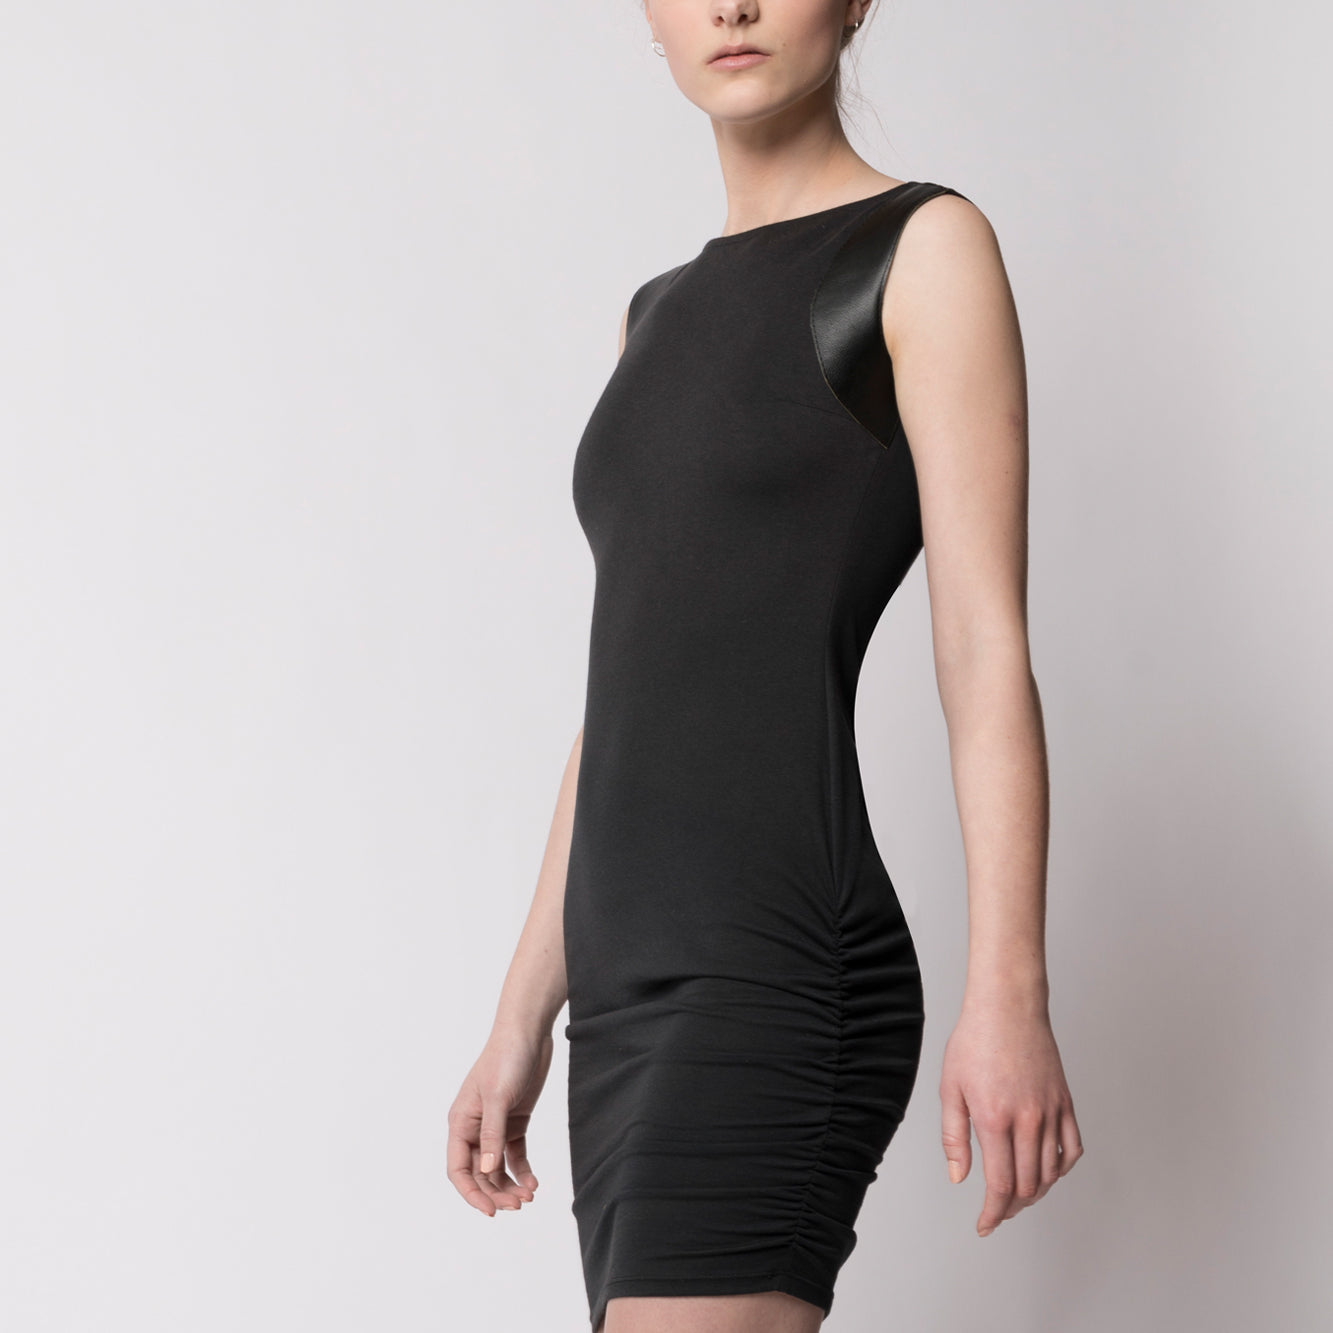 Fitted dress with leather detail - Tindi